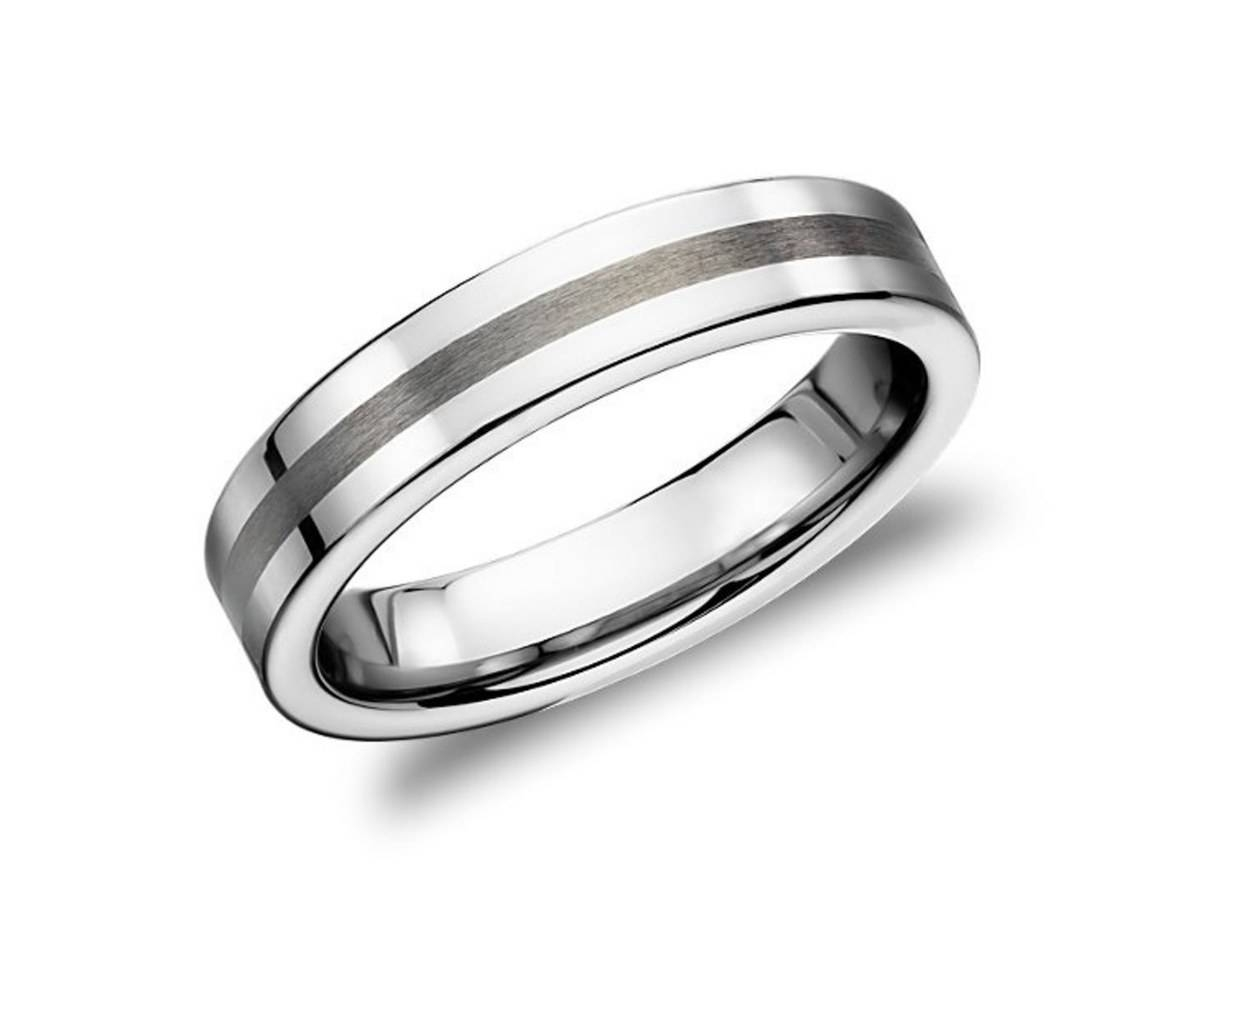 15 Men's Wedding Bands Your Groom Won't Want To Take Off | Glamour With Regard To Black And Silver Men's Wedding Bands (View 7 of 15)